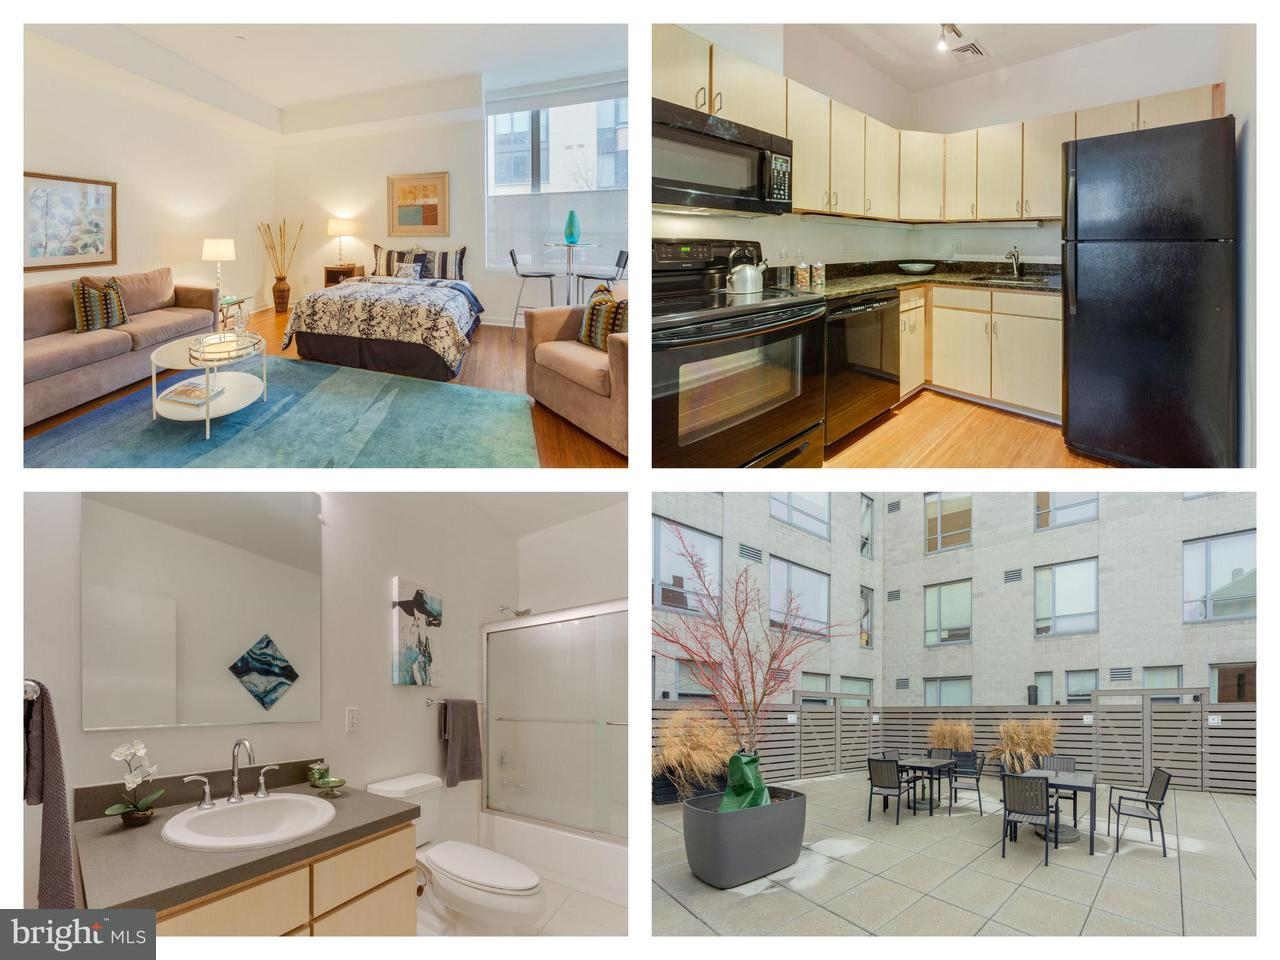 Condominium for Sale at 1414 Belmont St NW #102 Washington, District Of Columbia 20009 United States